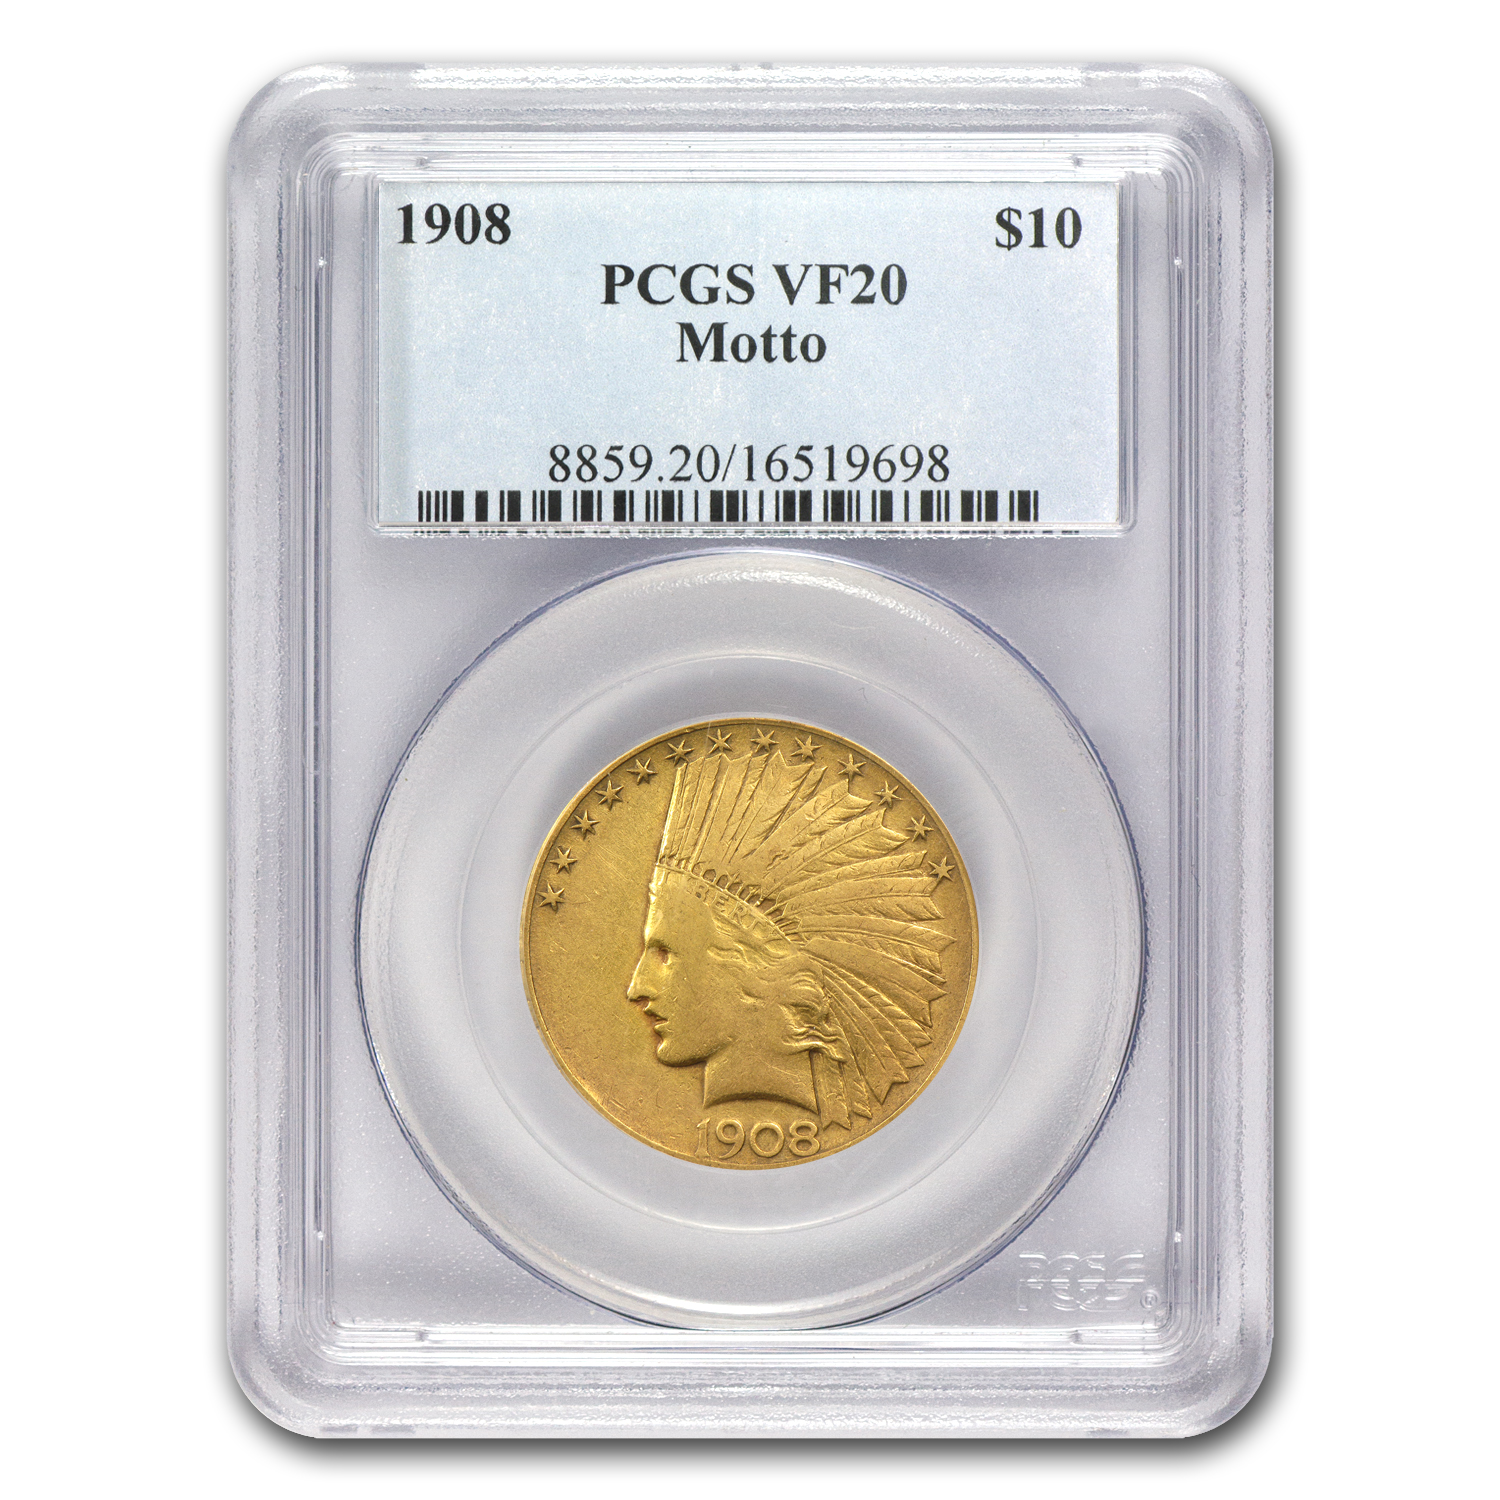 1908 $10 Indian Gold Eagle w/Motto VF-20 PCGS